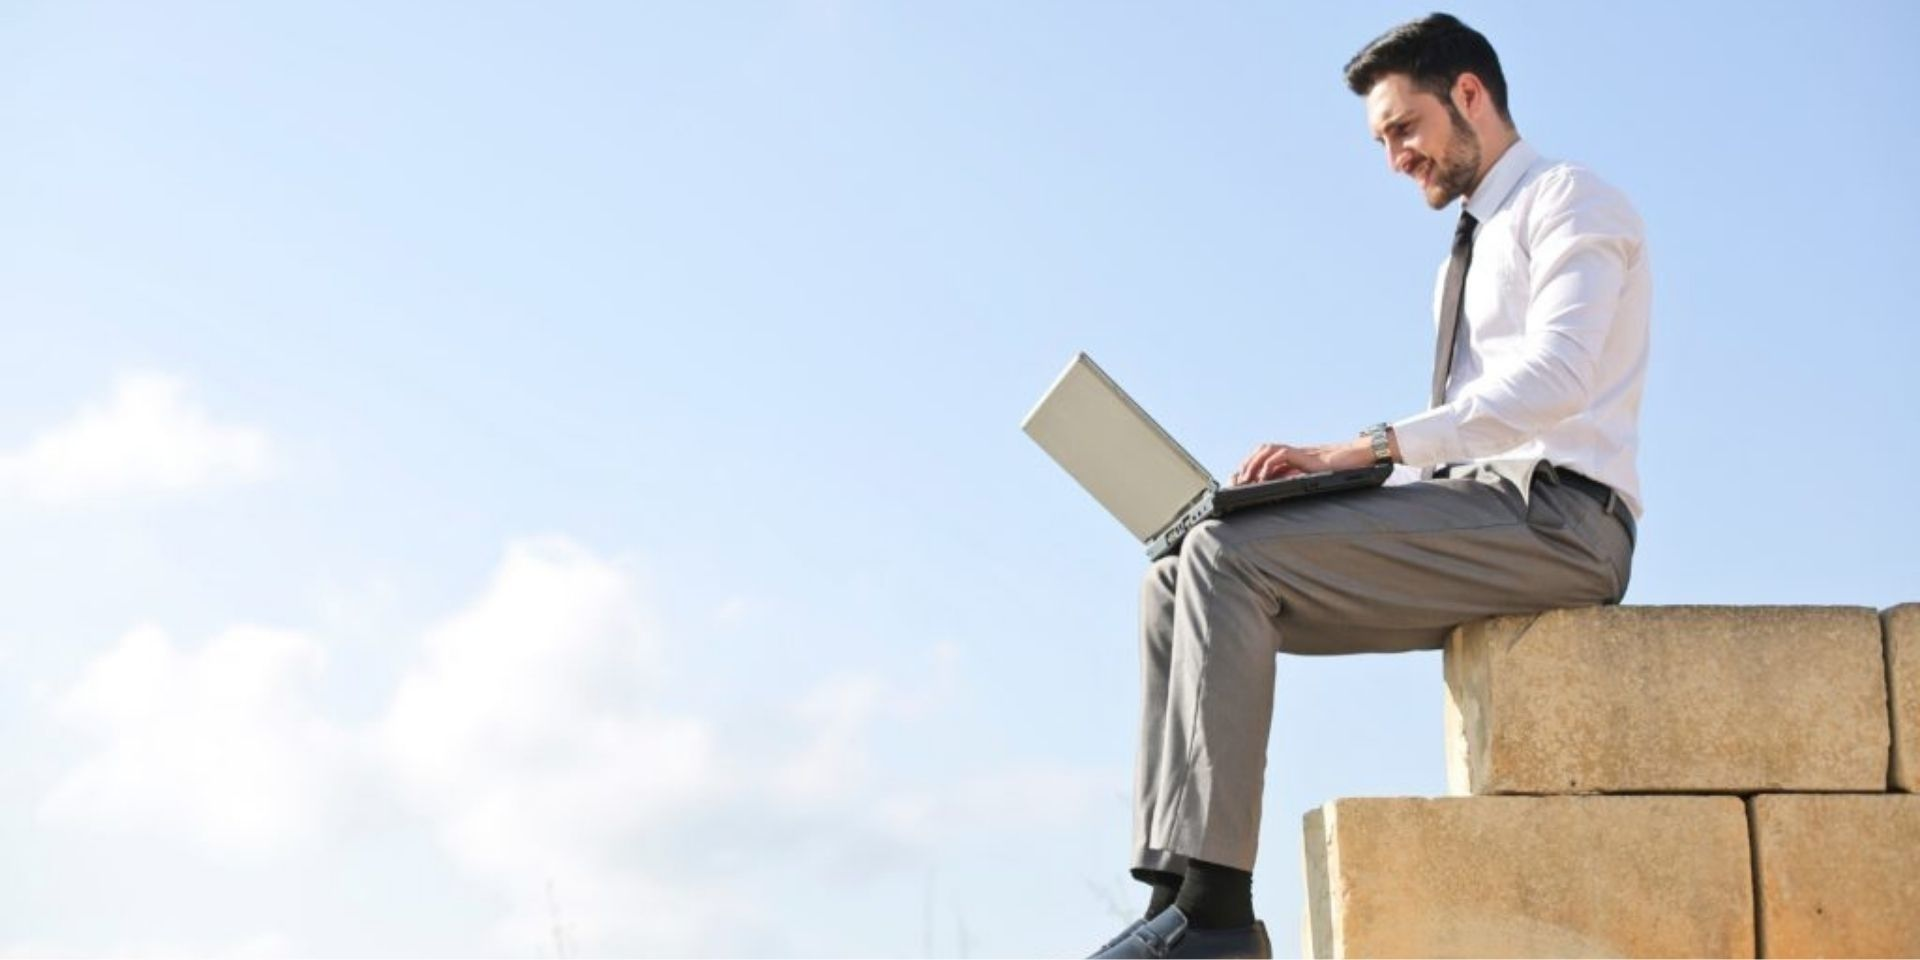 maintaining company culture while working remotely